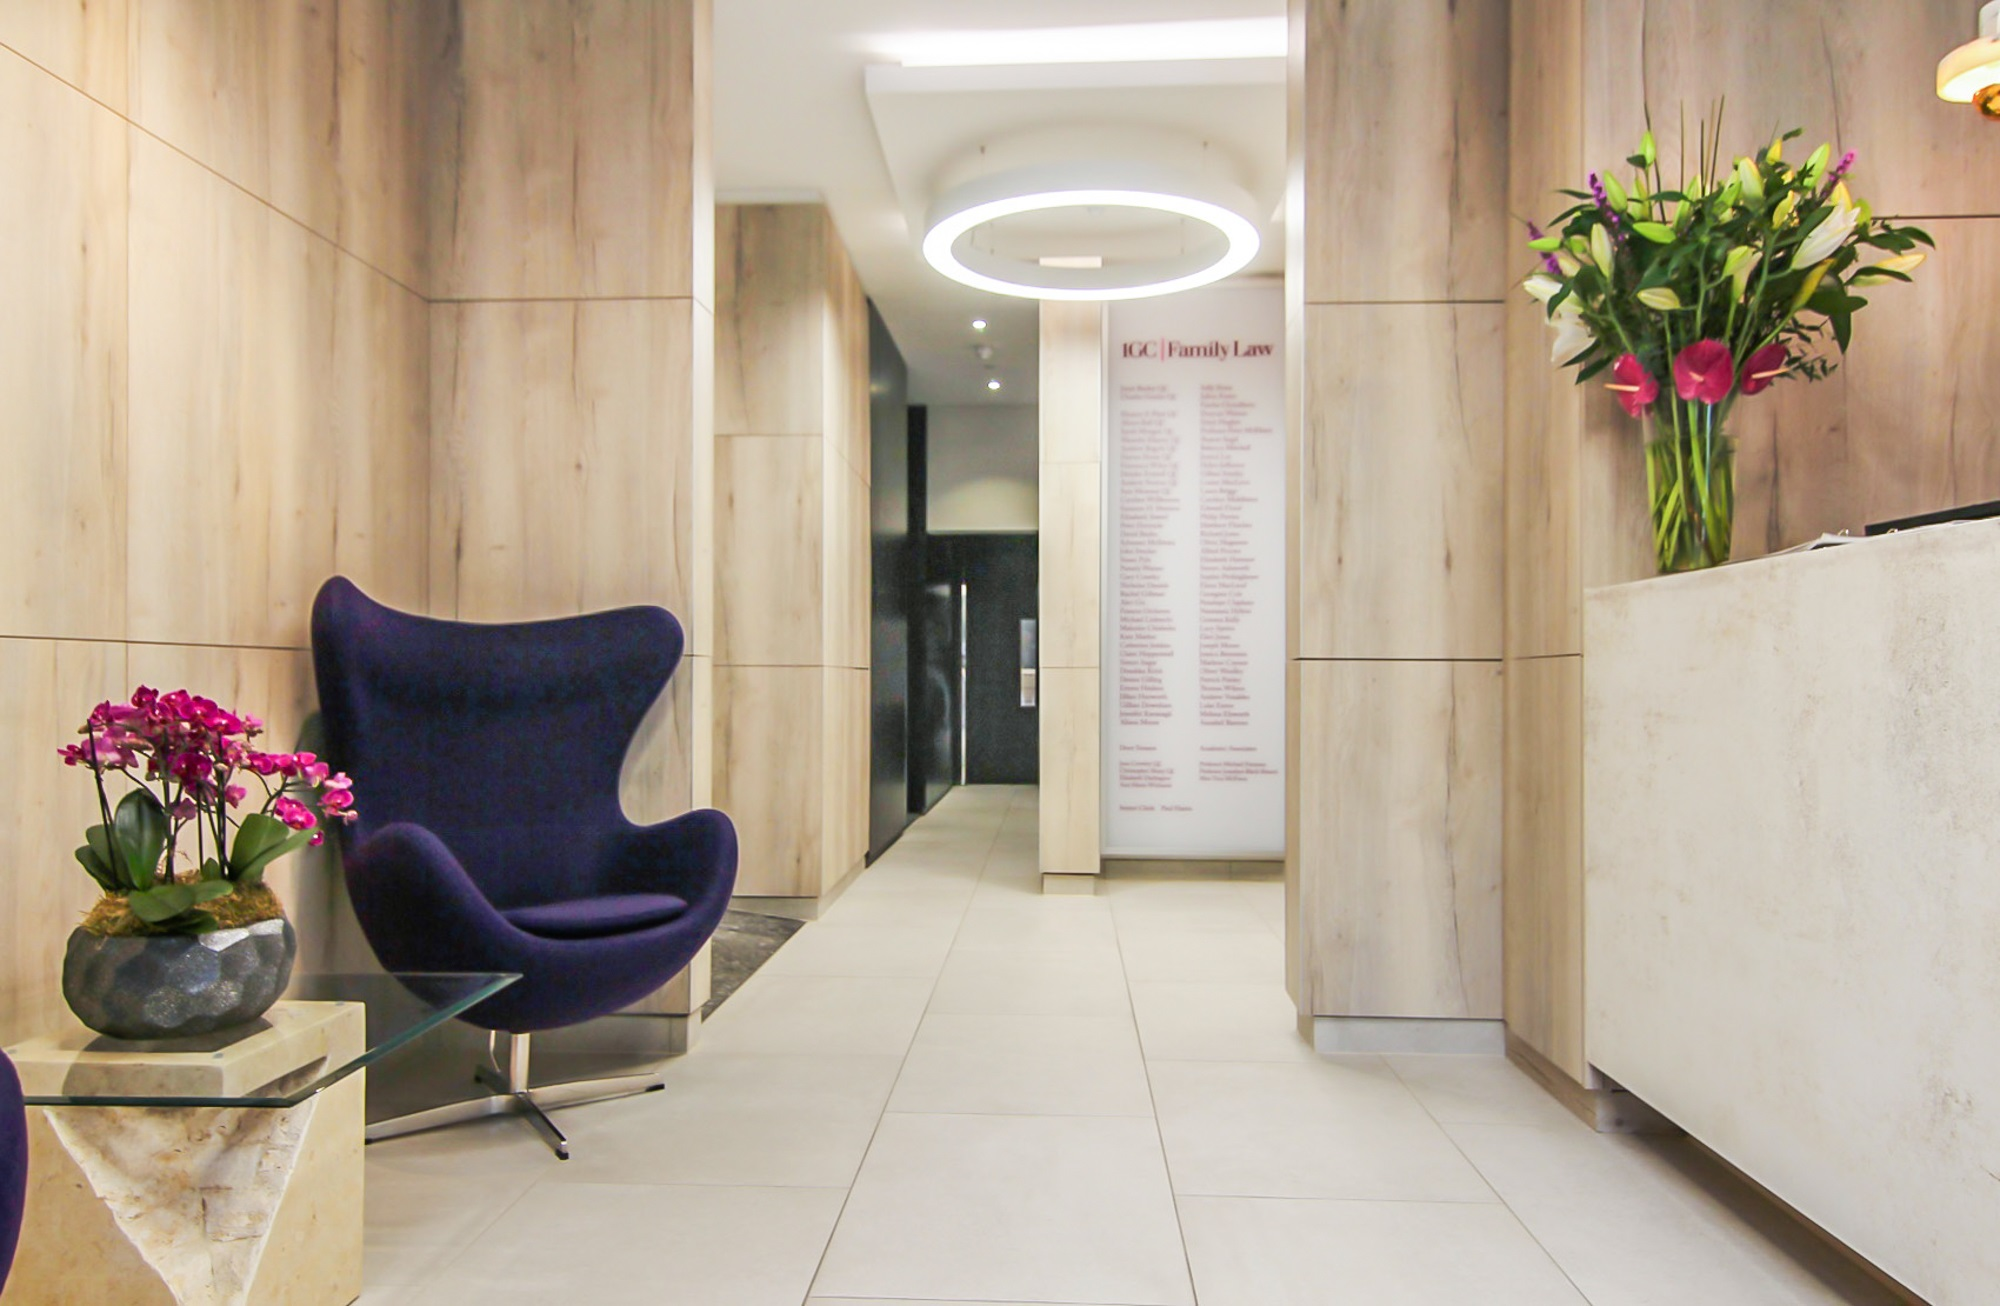 purple chair in the reception area